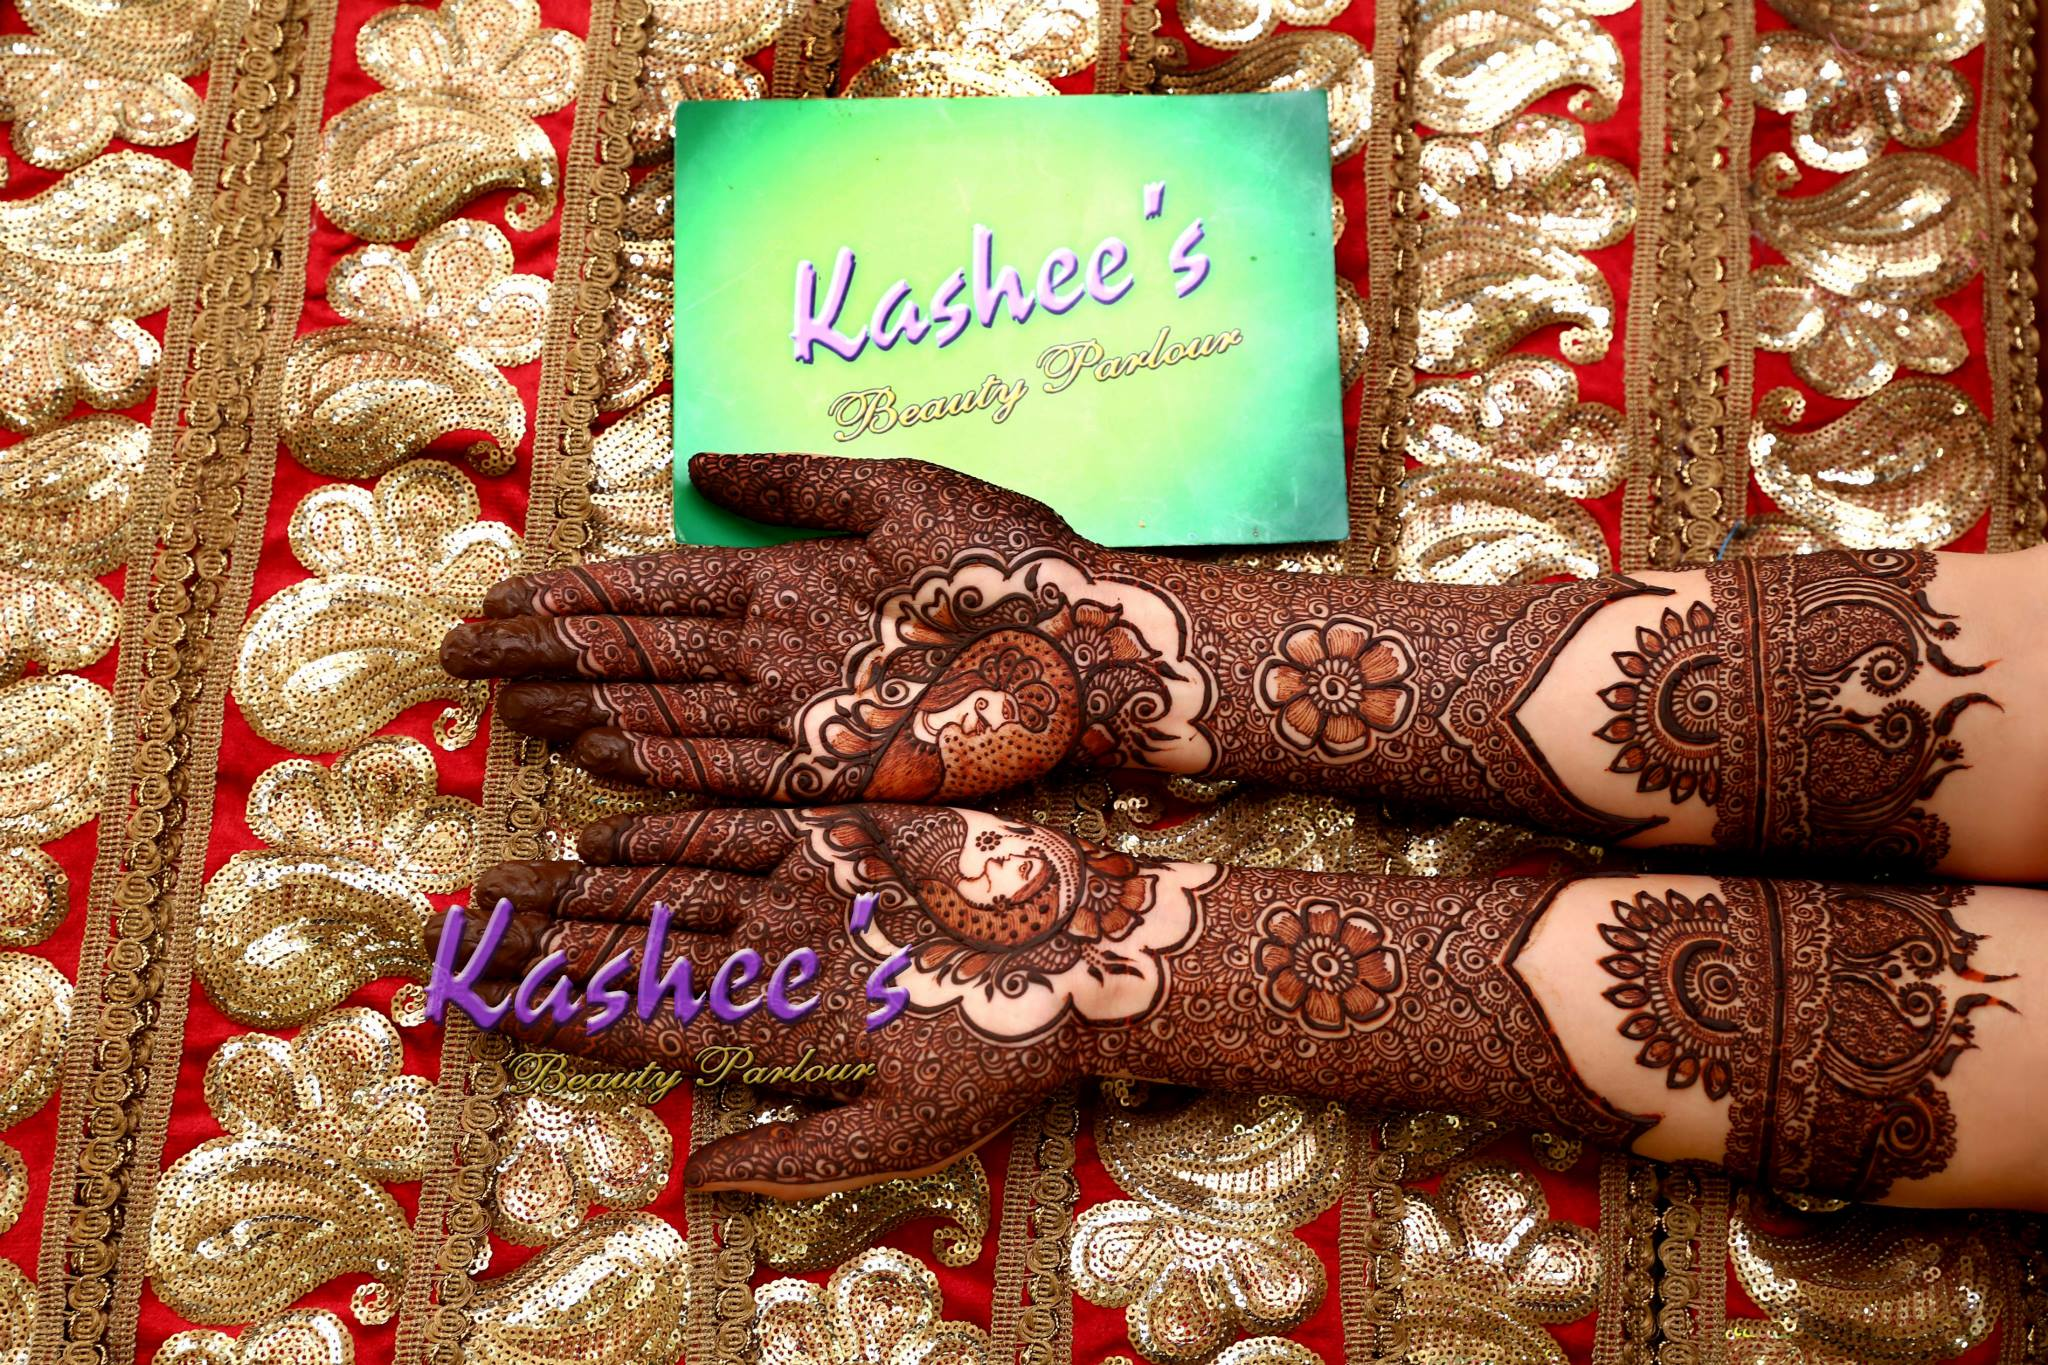 Kashee Bridal Mehndi : Stylish mehndi designs collection  by kashee artist salon